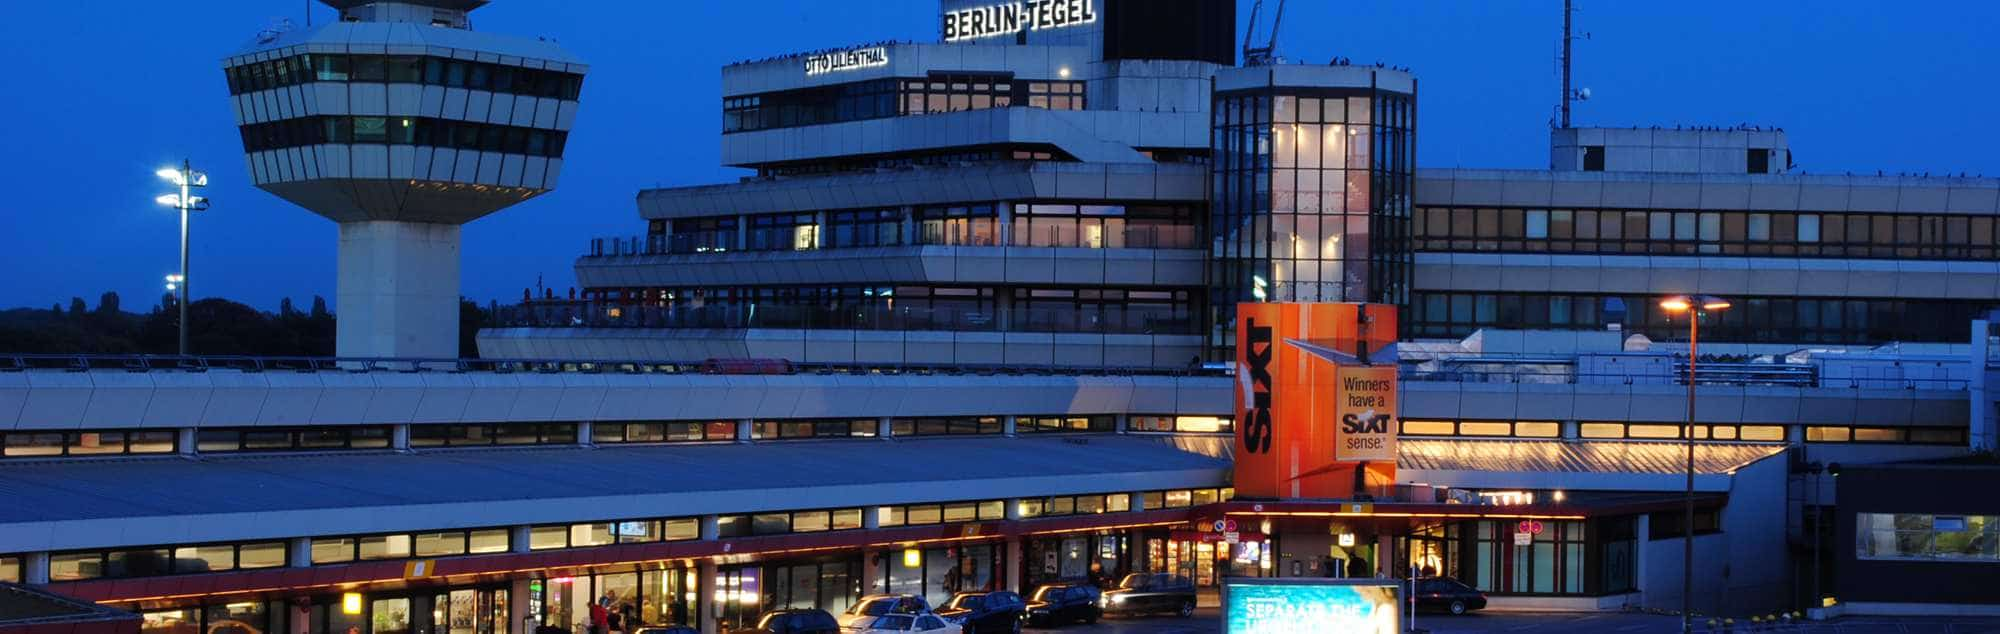 Tegels Online Berlin Tegel Txl Airport Transfers Taxis Online Booking